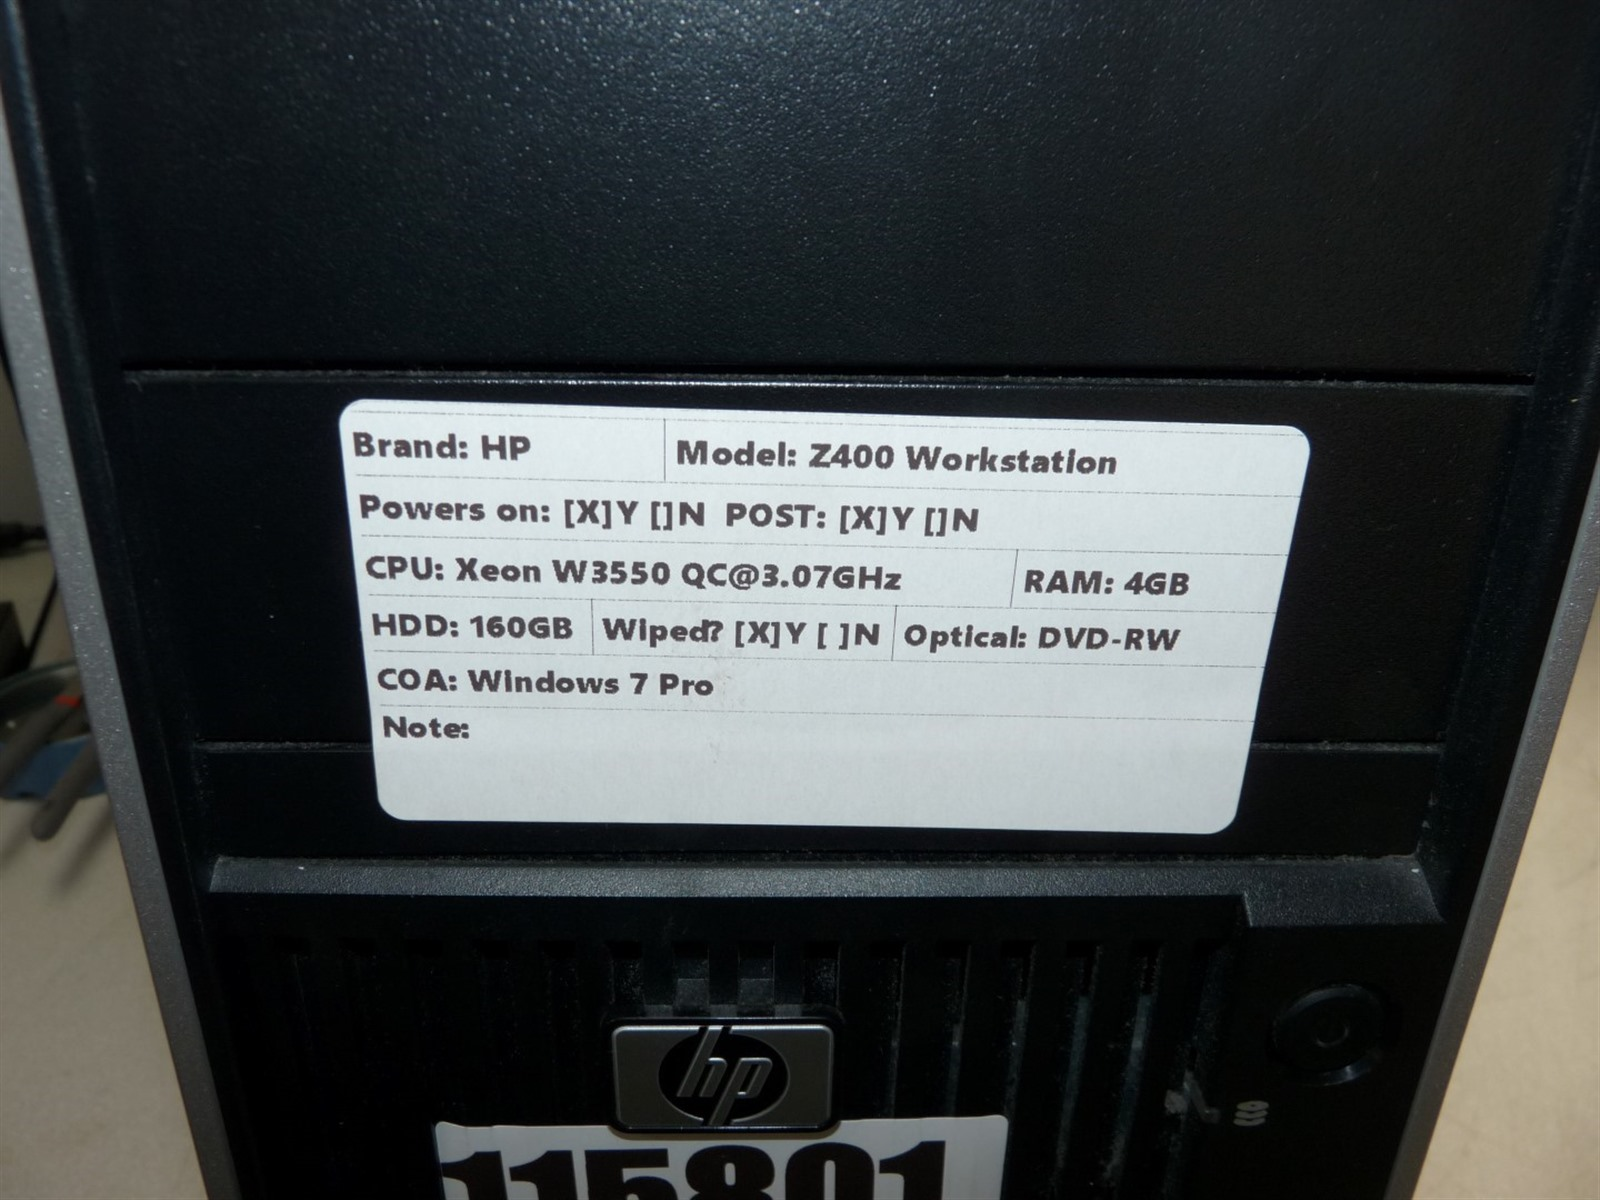 Details about HP Z400 Workstation PC Xeon Quad Core(W3550)3 07GHz 4GB  160GB-HD Boots